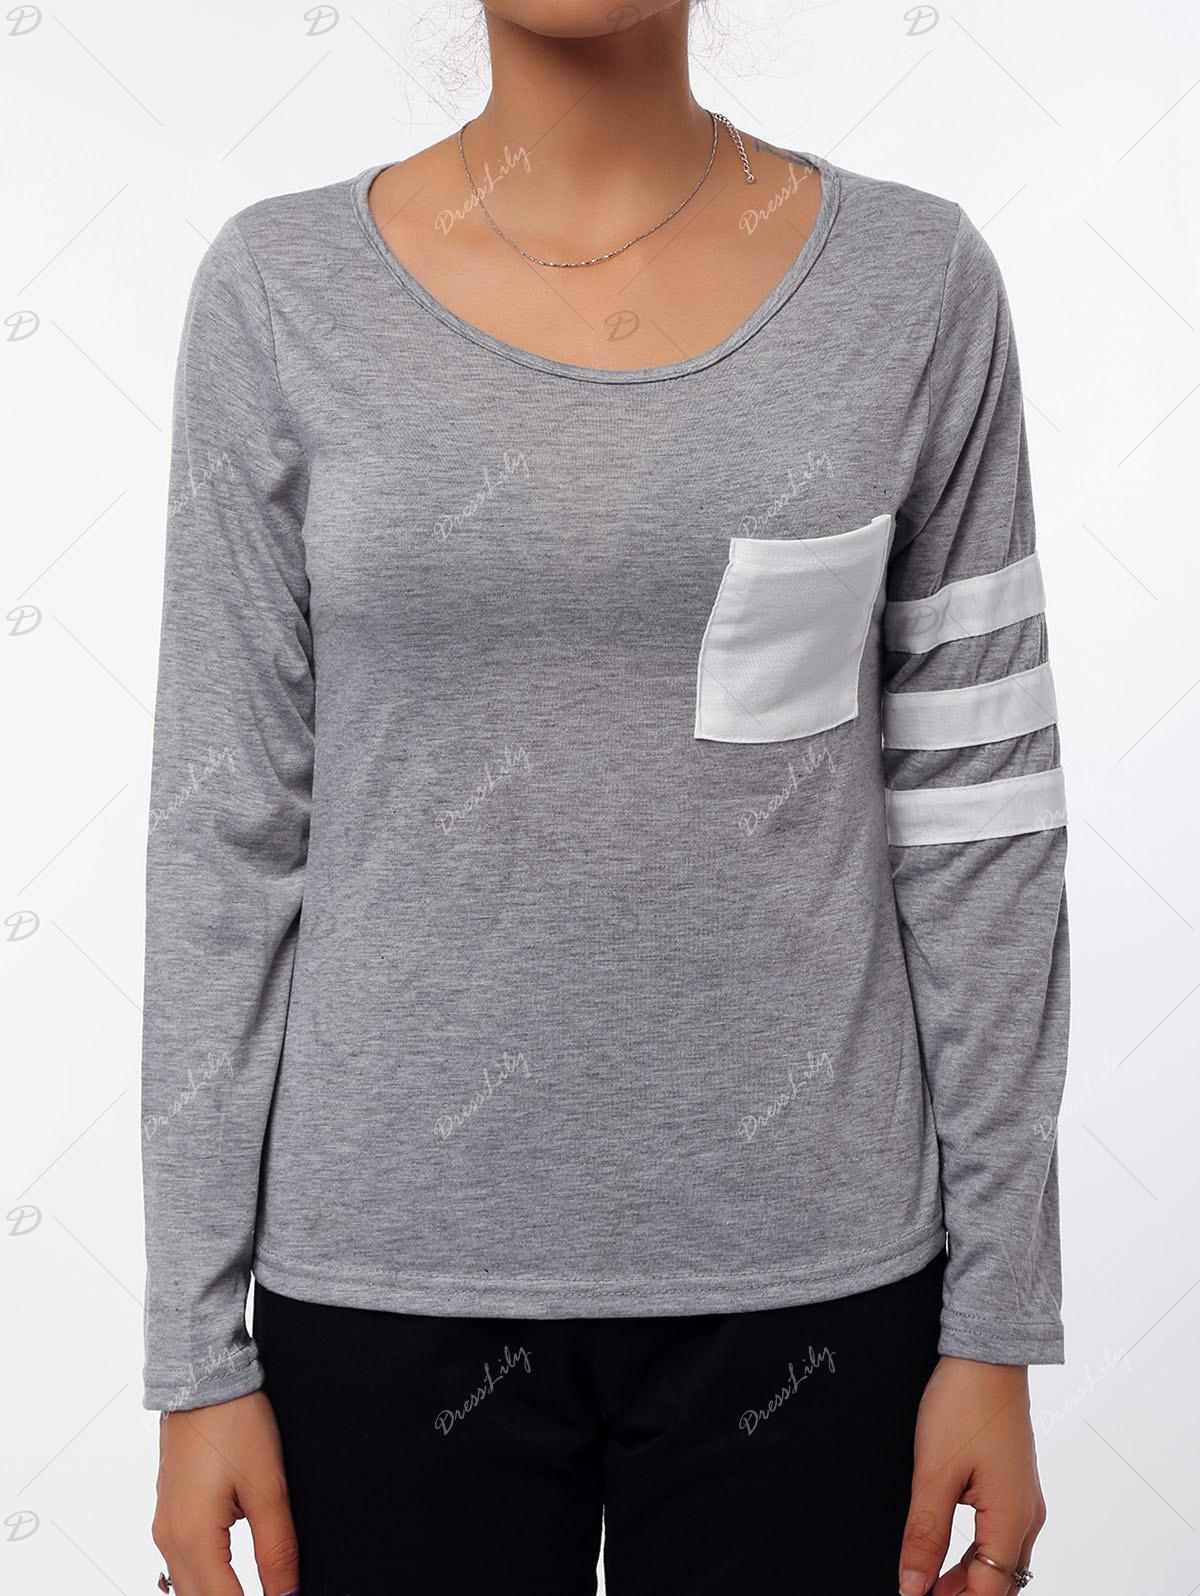 Simple Style Scoop Neck Color Block Striped Sleeve T-Shirt For Women